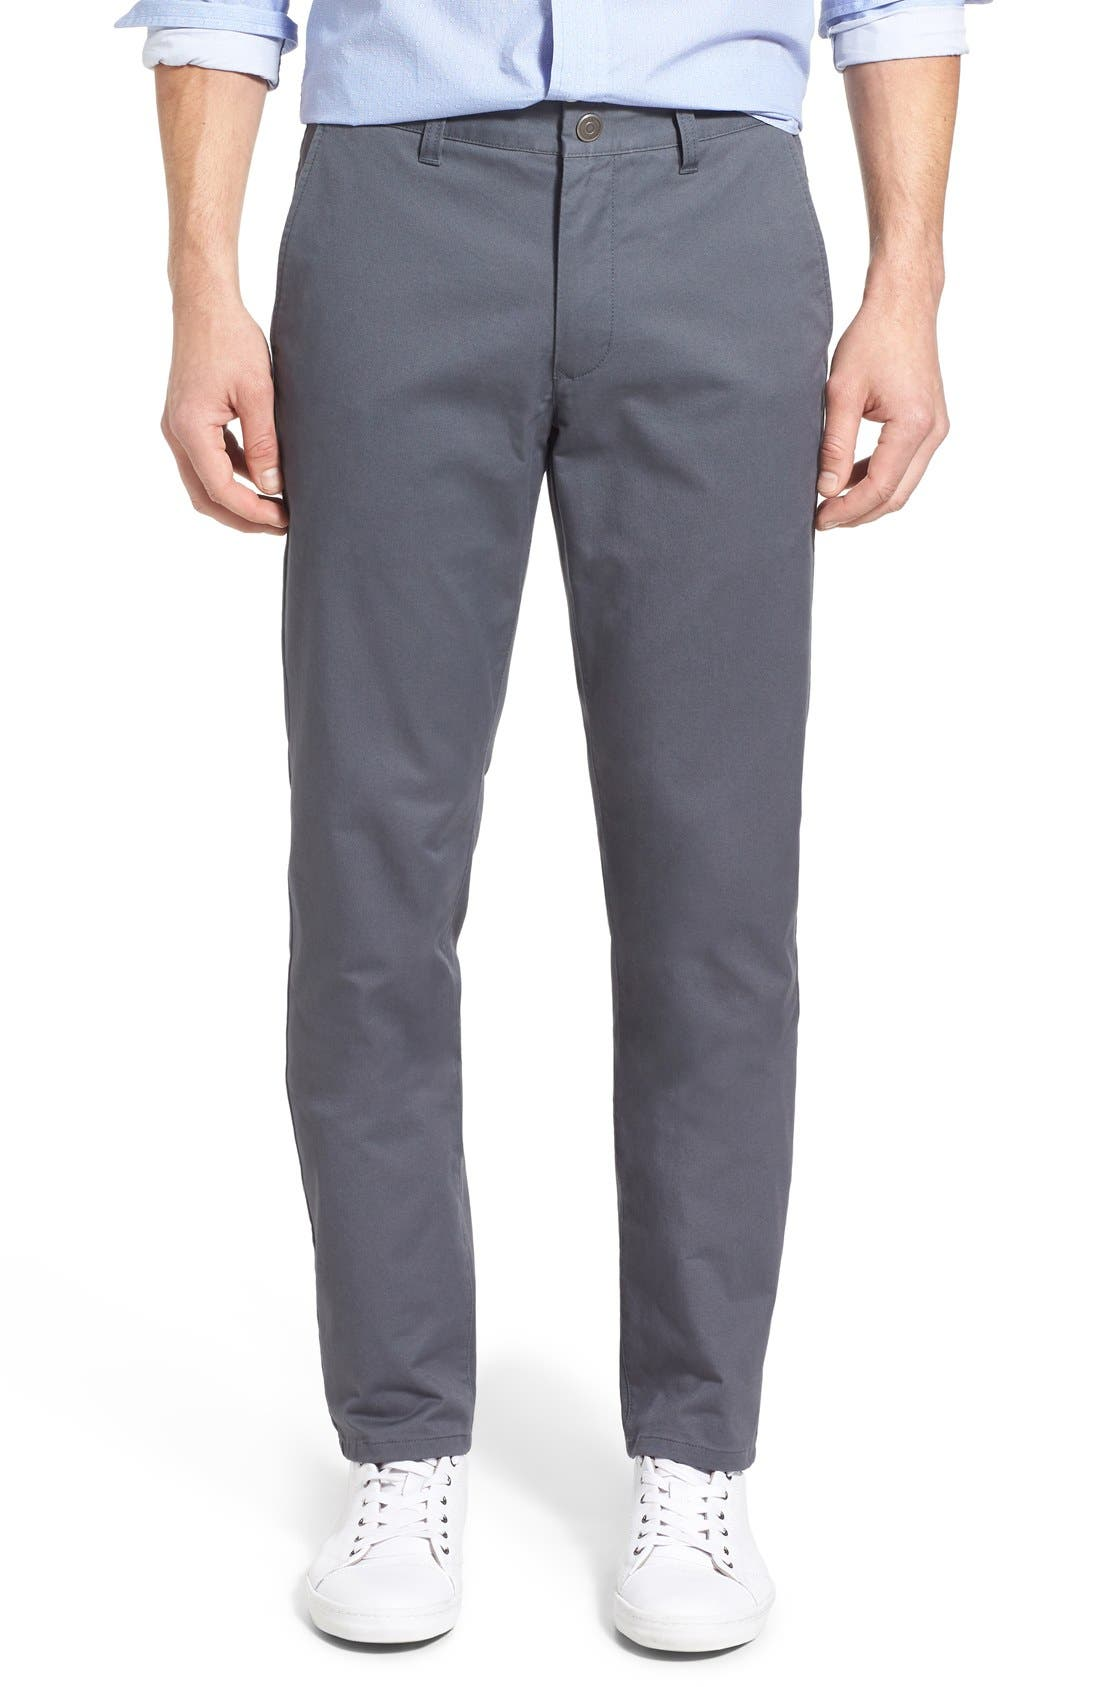 Alternate Image 1 Selected - Bonobos Slim Fit Washed Stretch Cotton Chinos